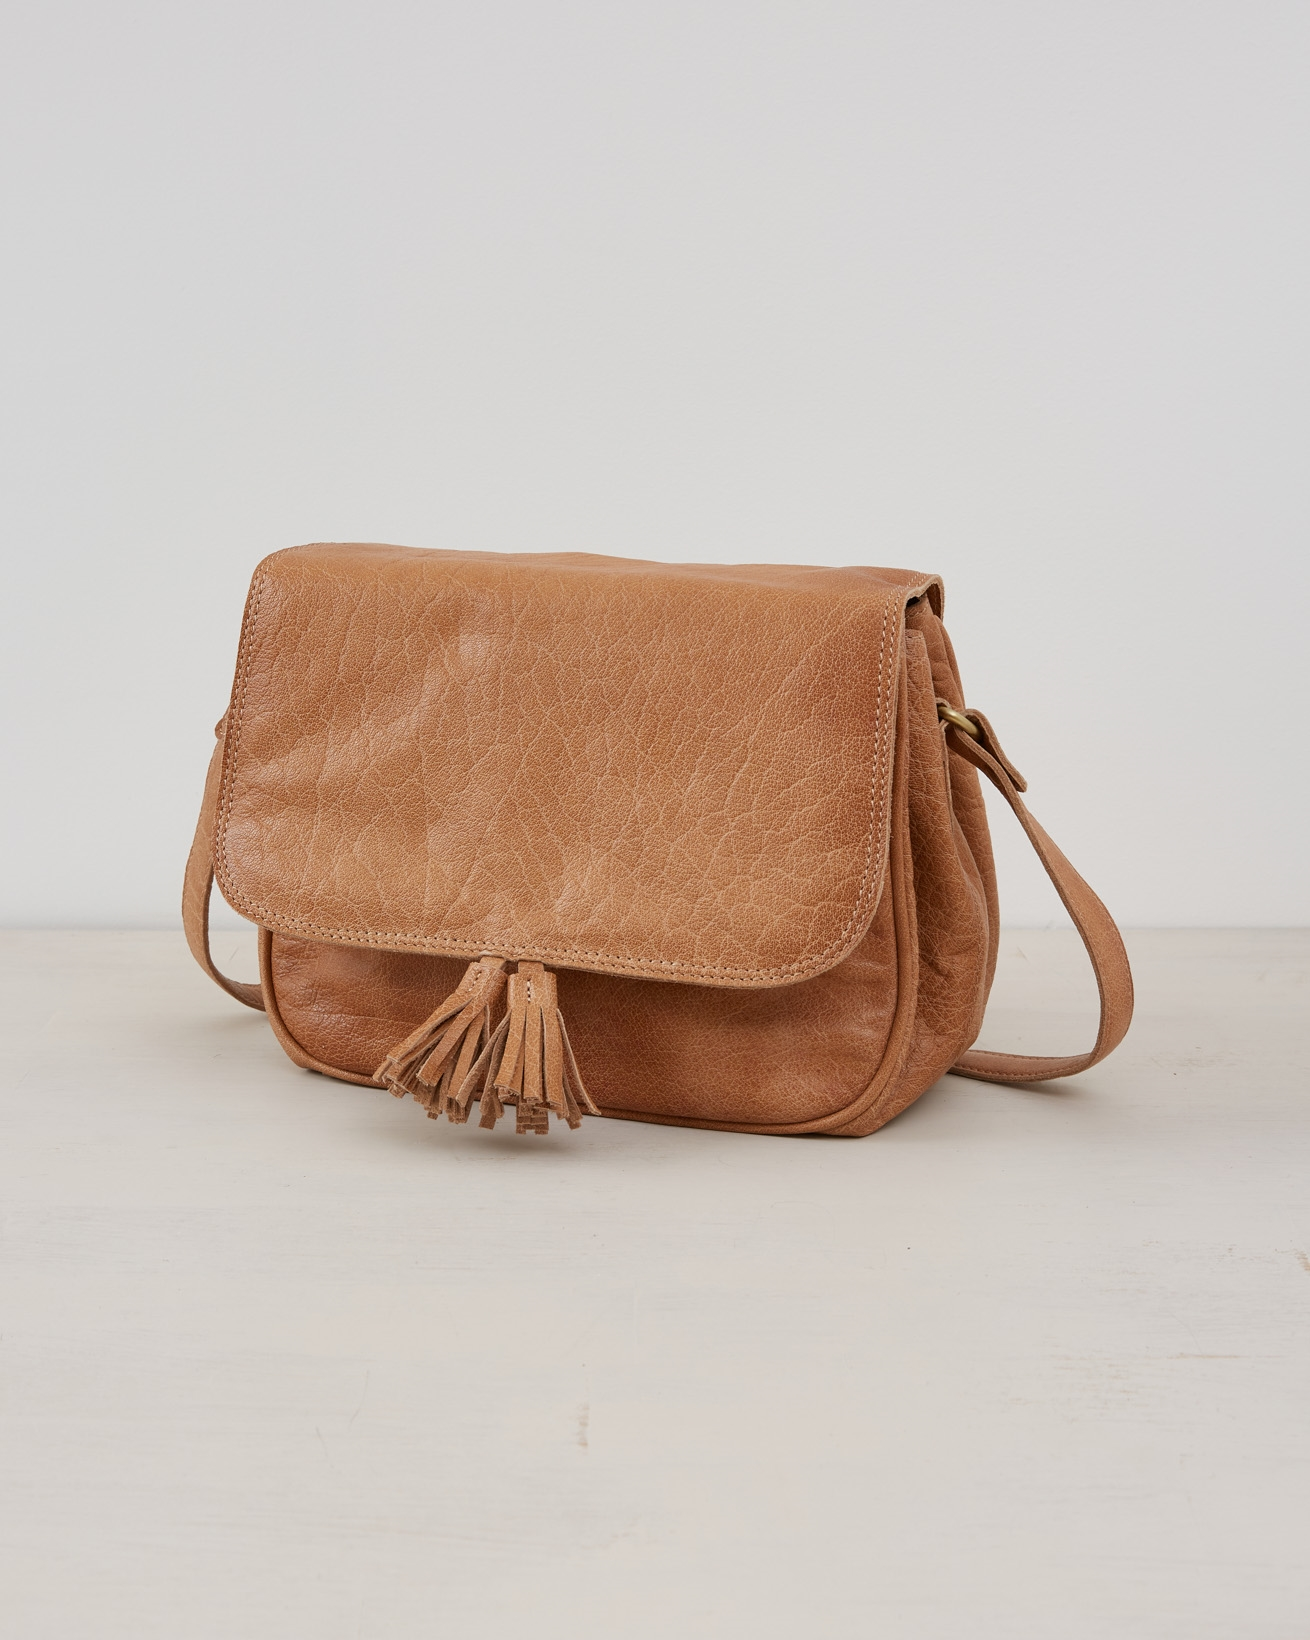 Leather Cross Body Bag with Flap - Camel - One Size - 2568